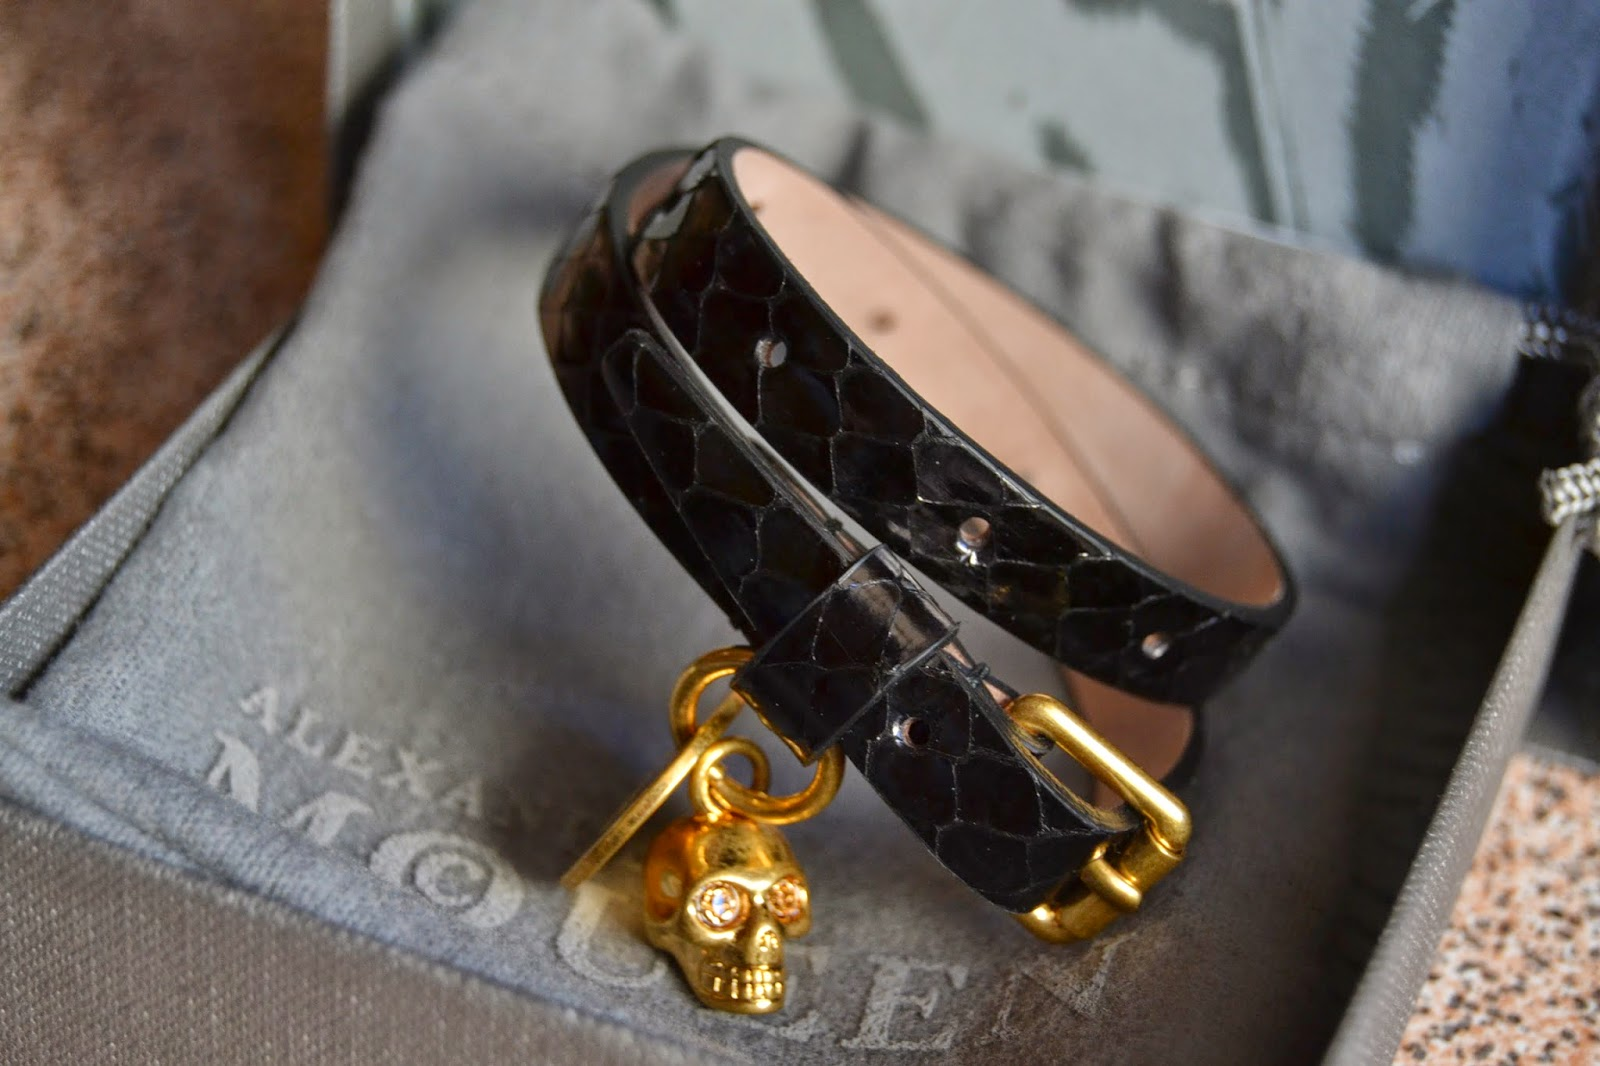 http://www.syriouslyinfashion.com/2014/06/new-in-alexander-mcqueen-bracelet.html